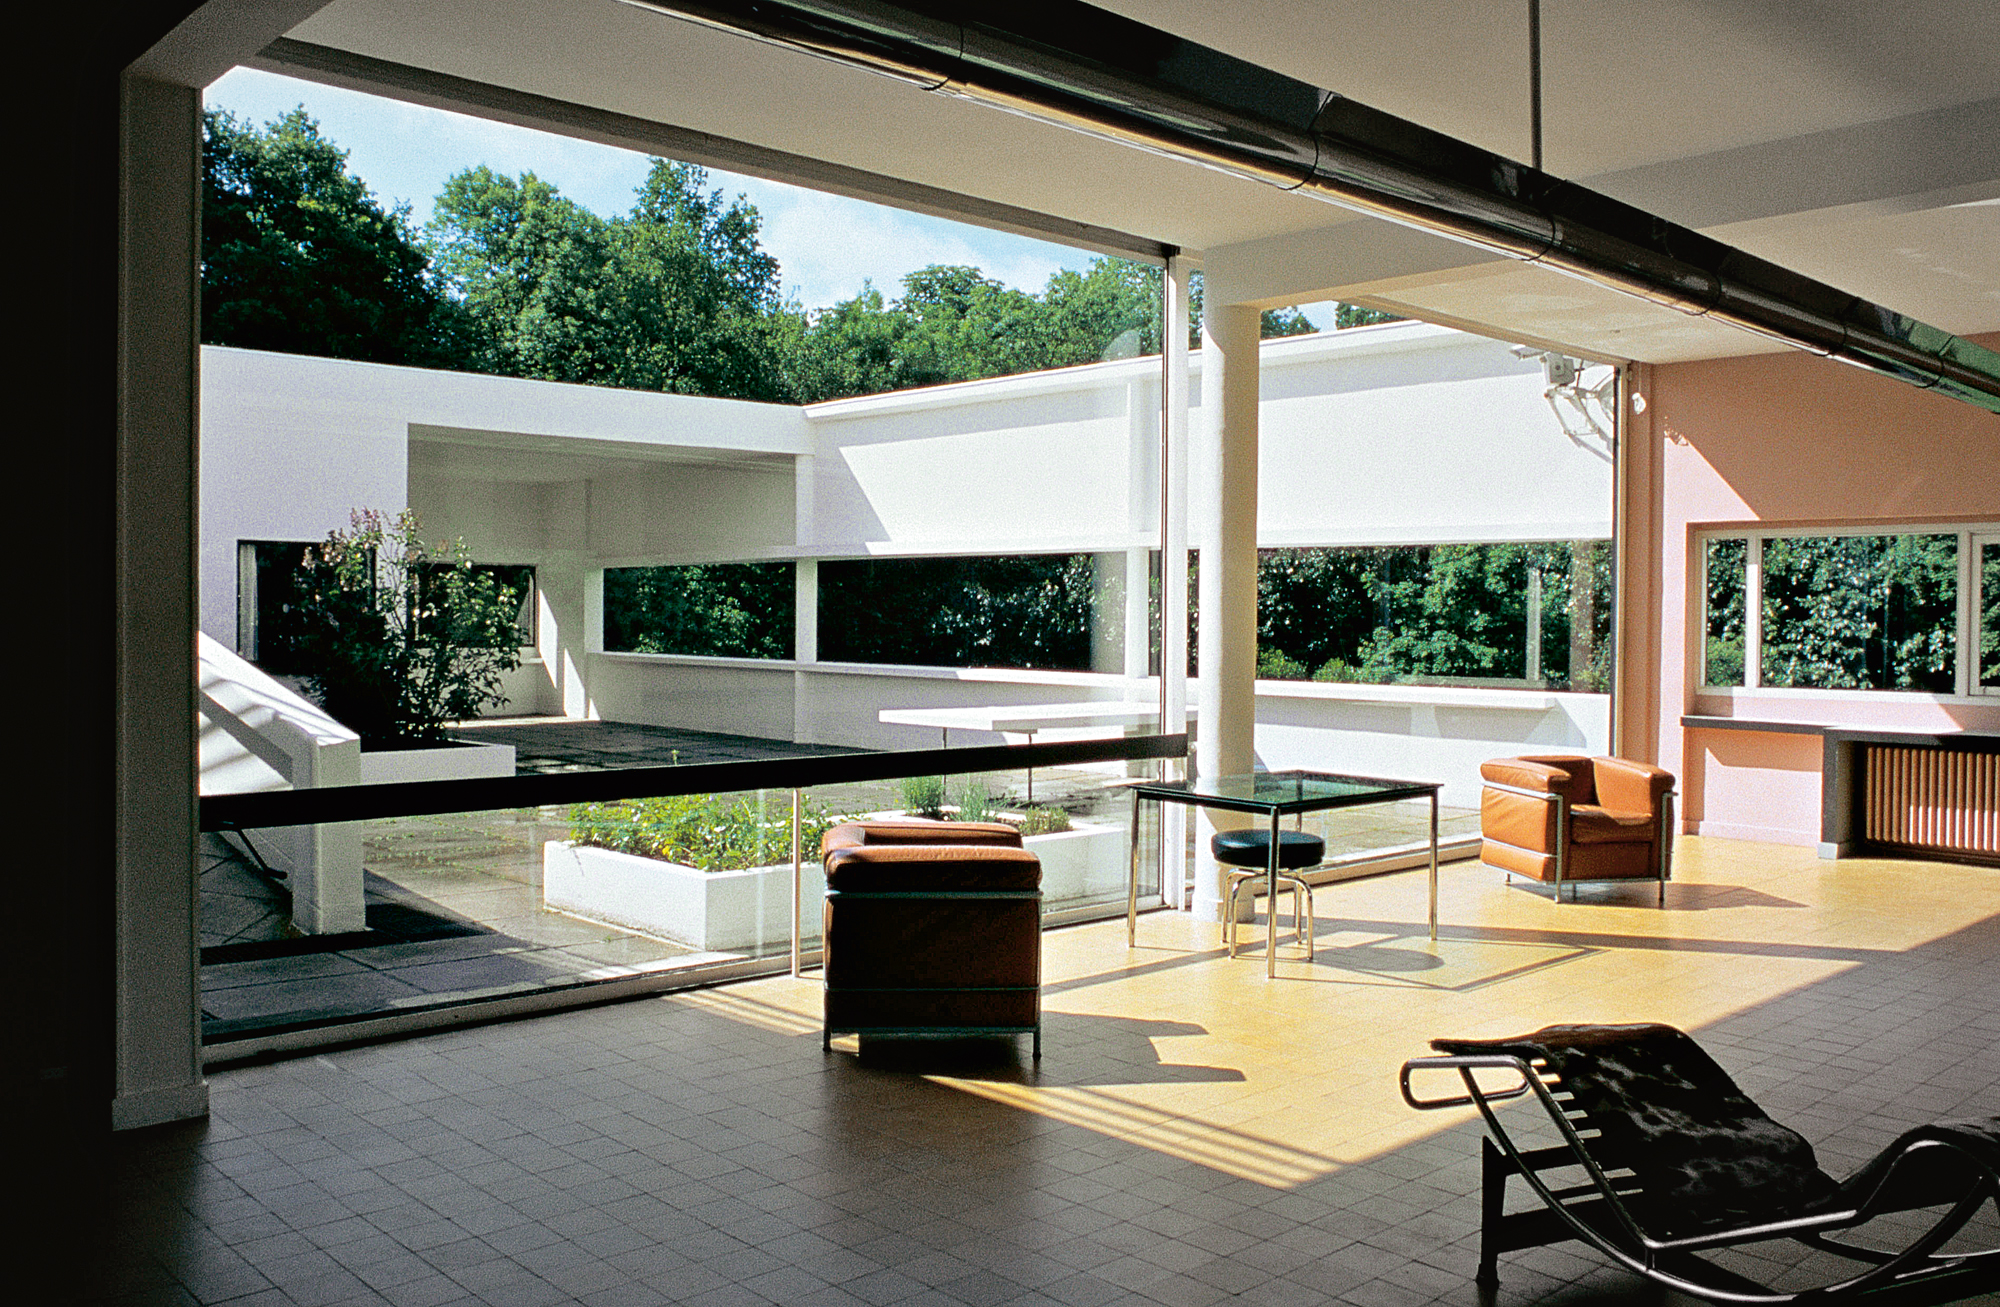 Villa savoye modern architecture blog Home architecture blogs